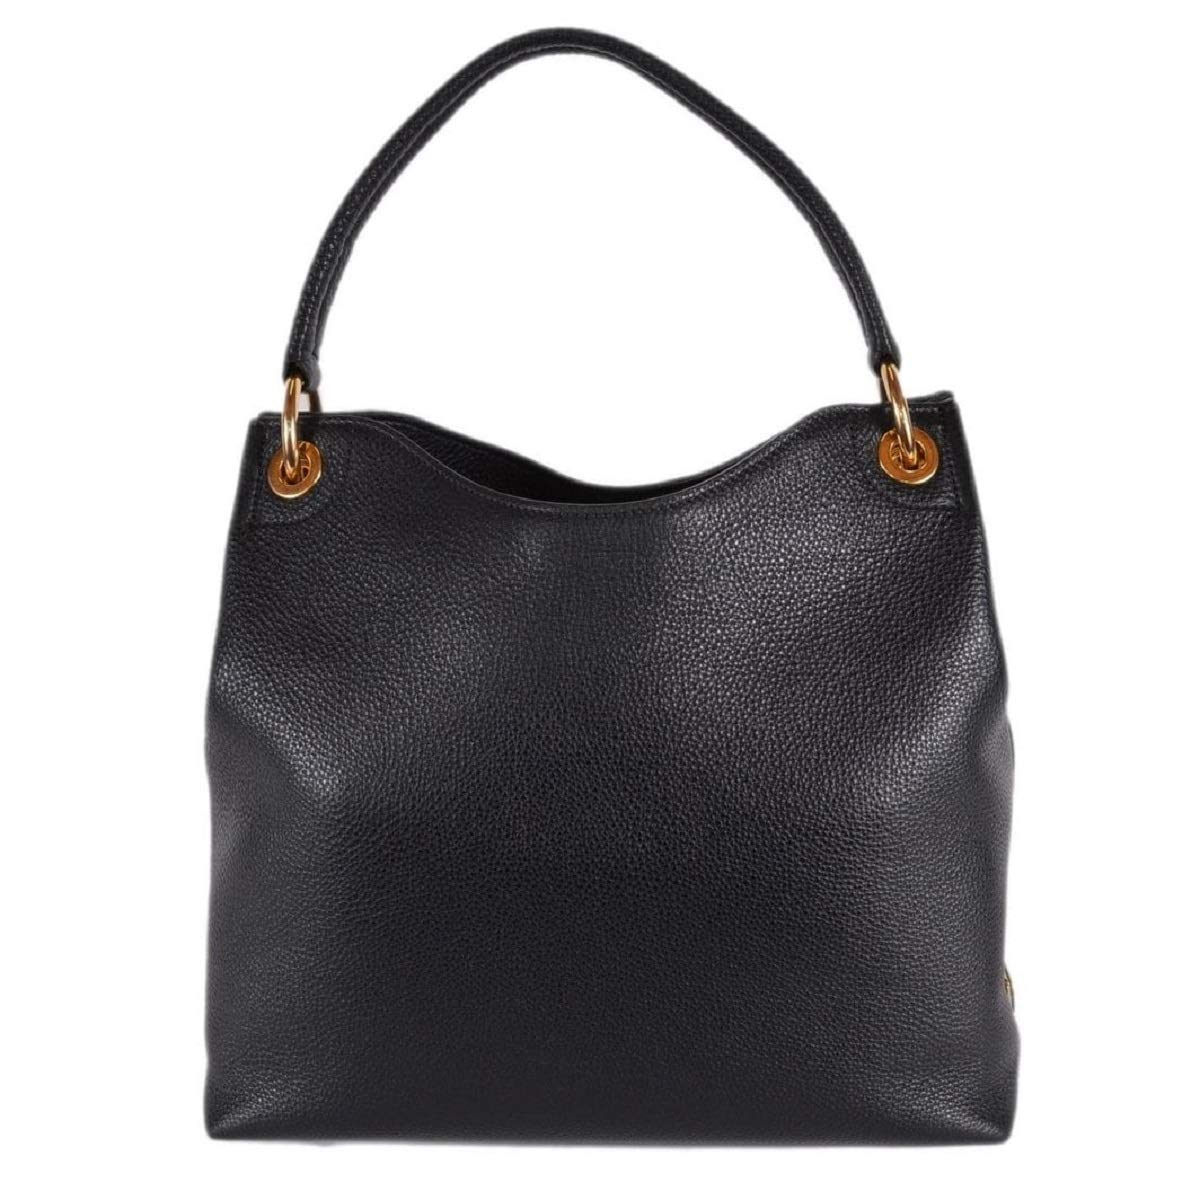 9e3b55a4fd6f Prada Women's Vitello Daino Black Leather Satchel Bag Handbag 1BC051:  Handbags: Amazon.com